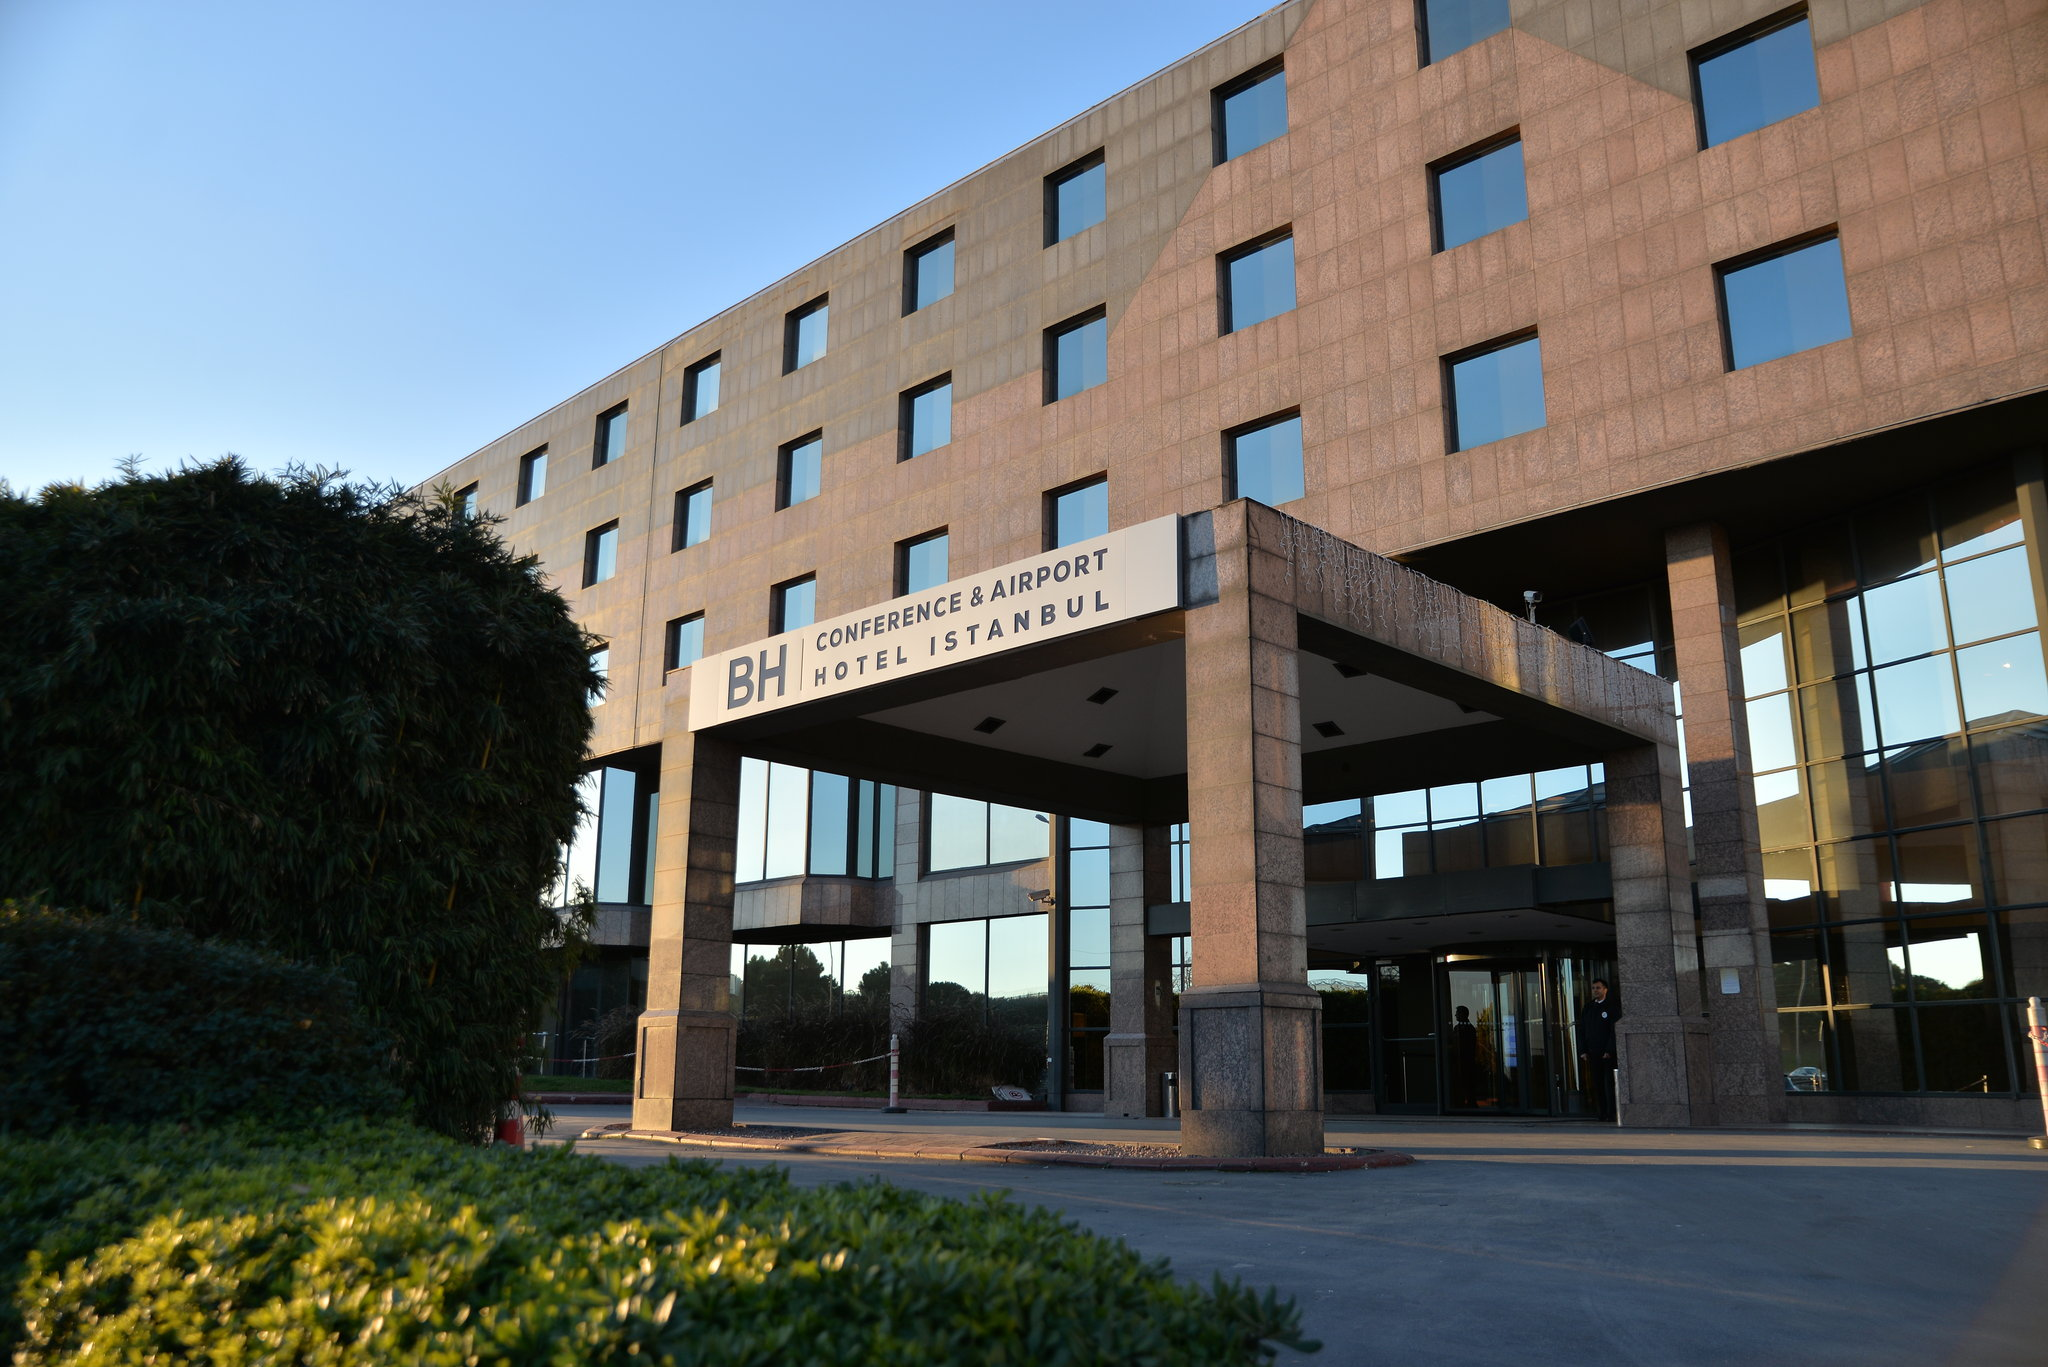 Bh Conference Airport Hotel